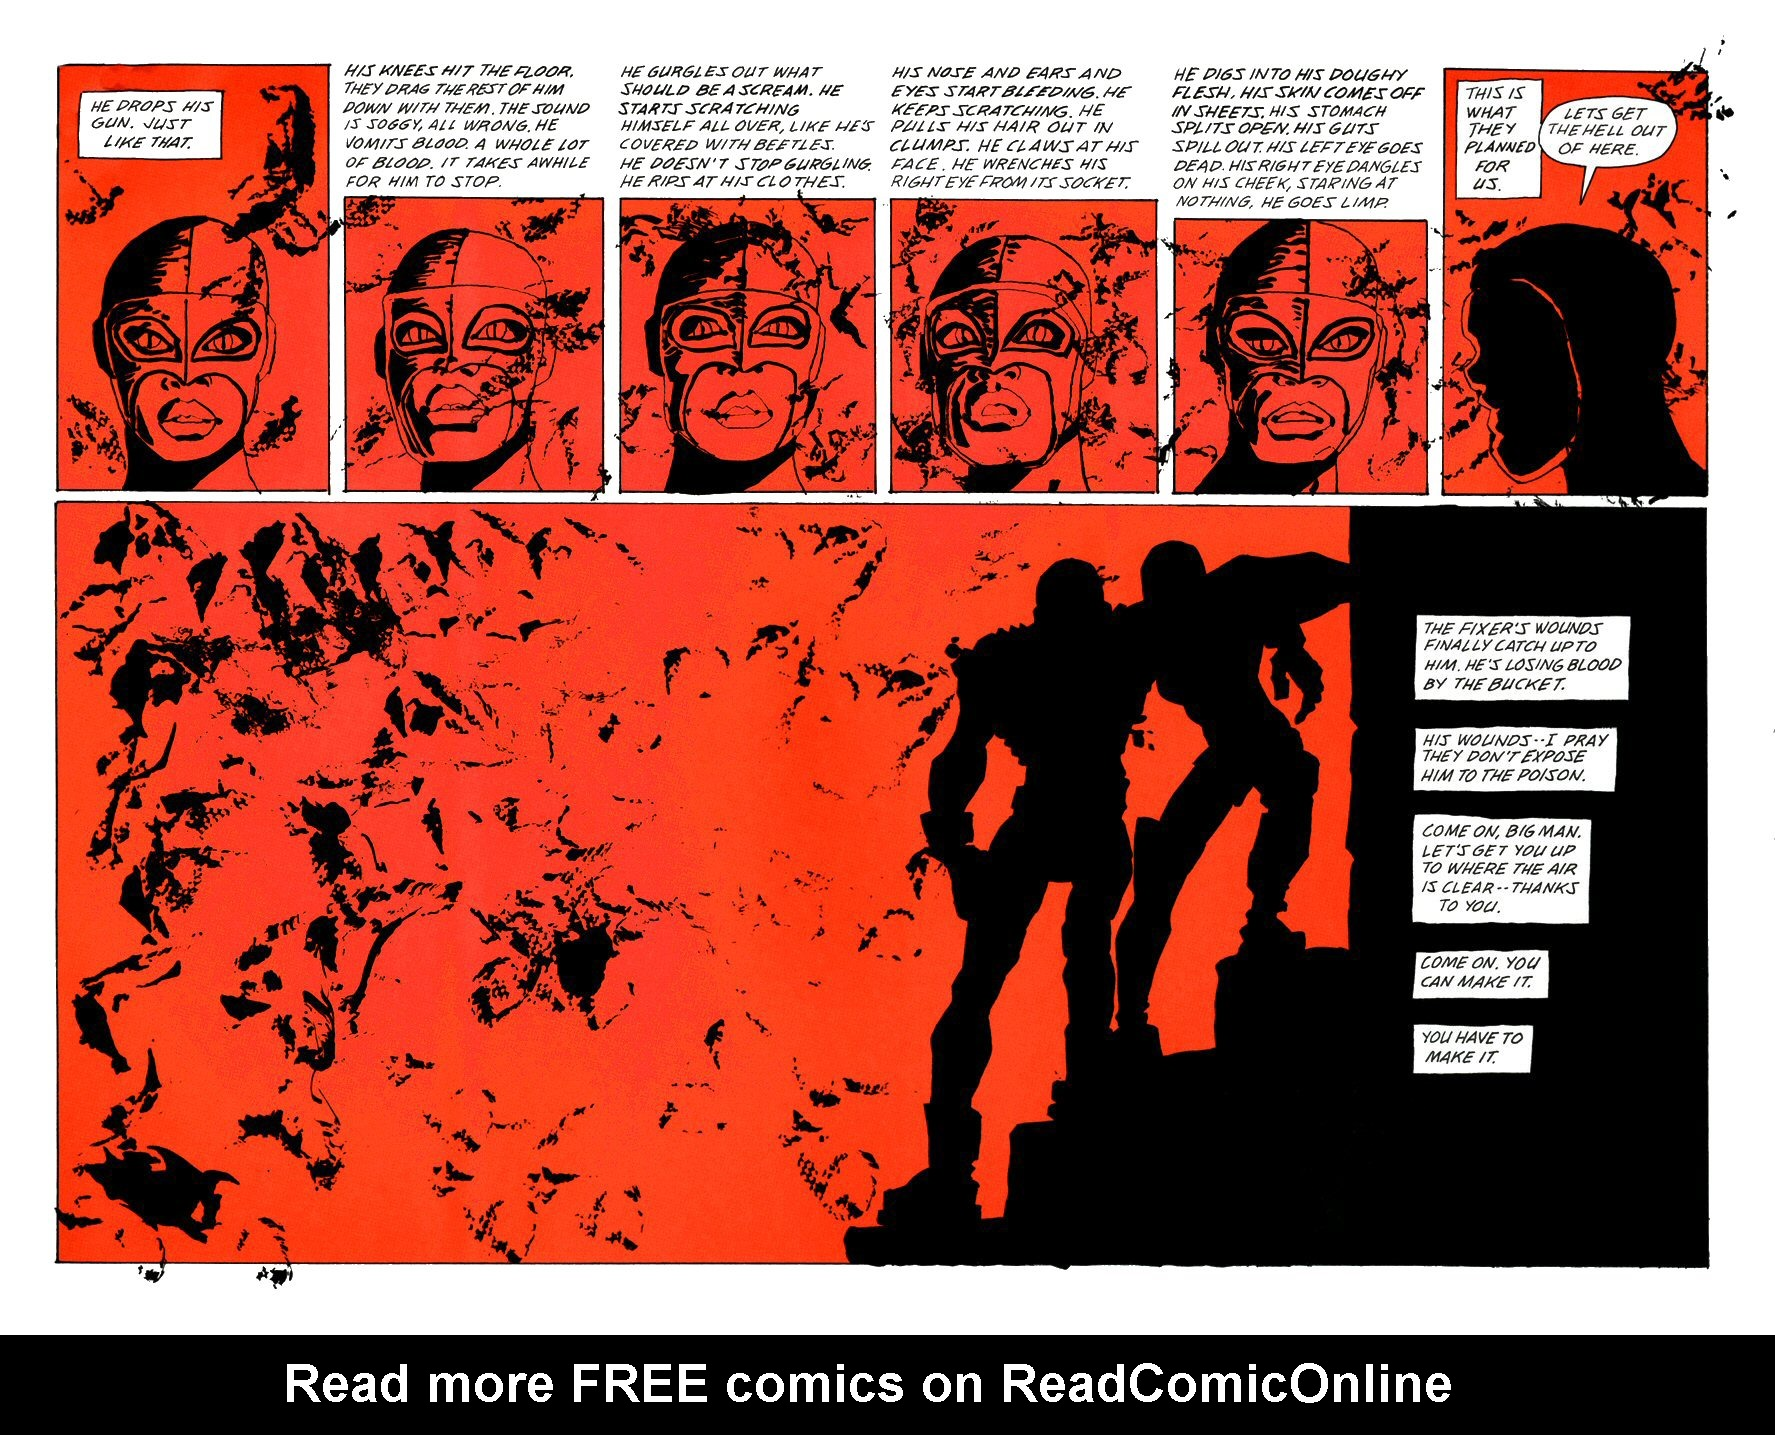 Read online Frank Miller's Holy Terror comic -  Issue # TPB - 115